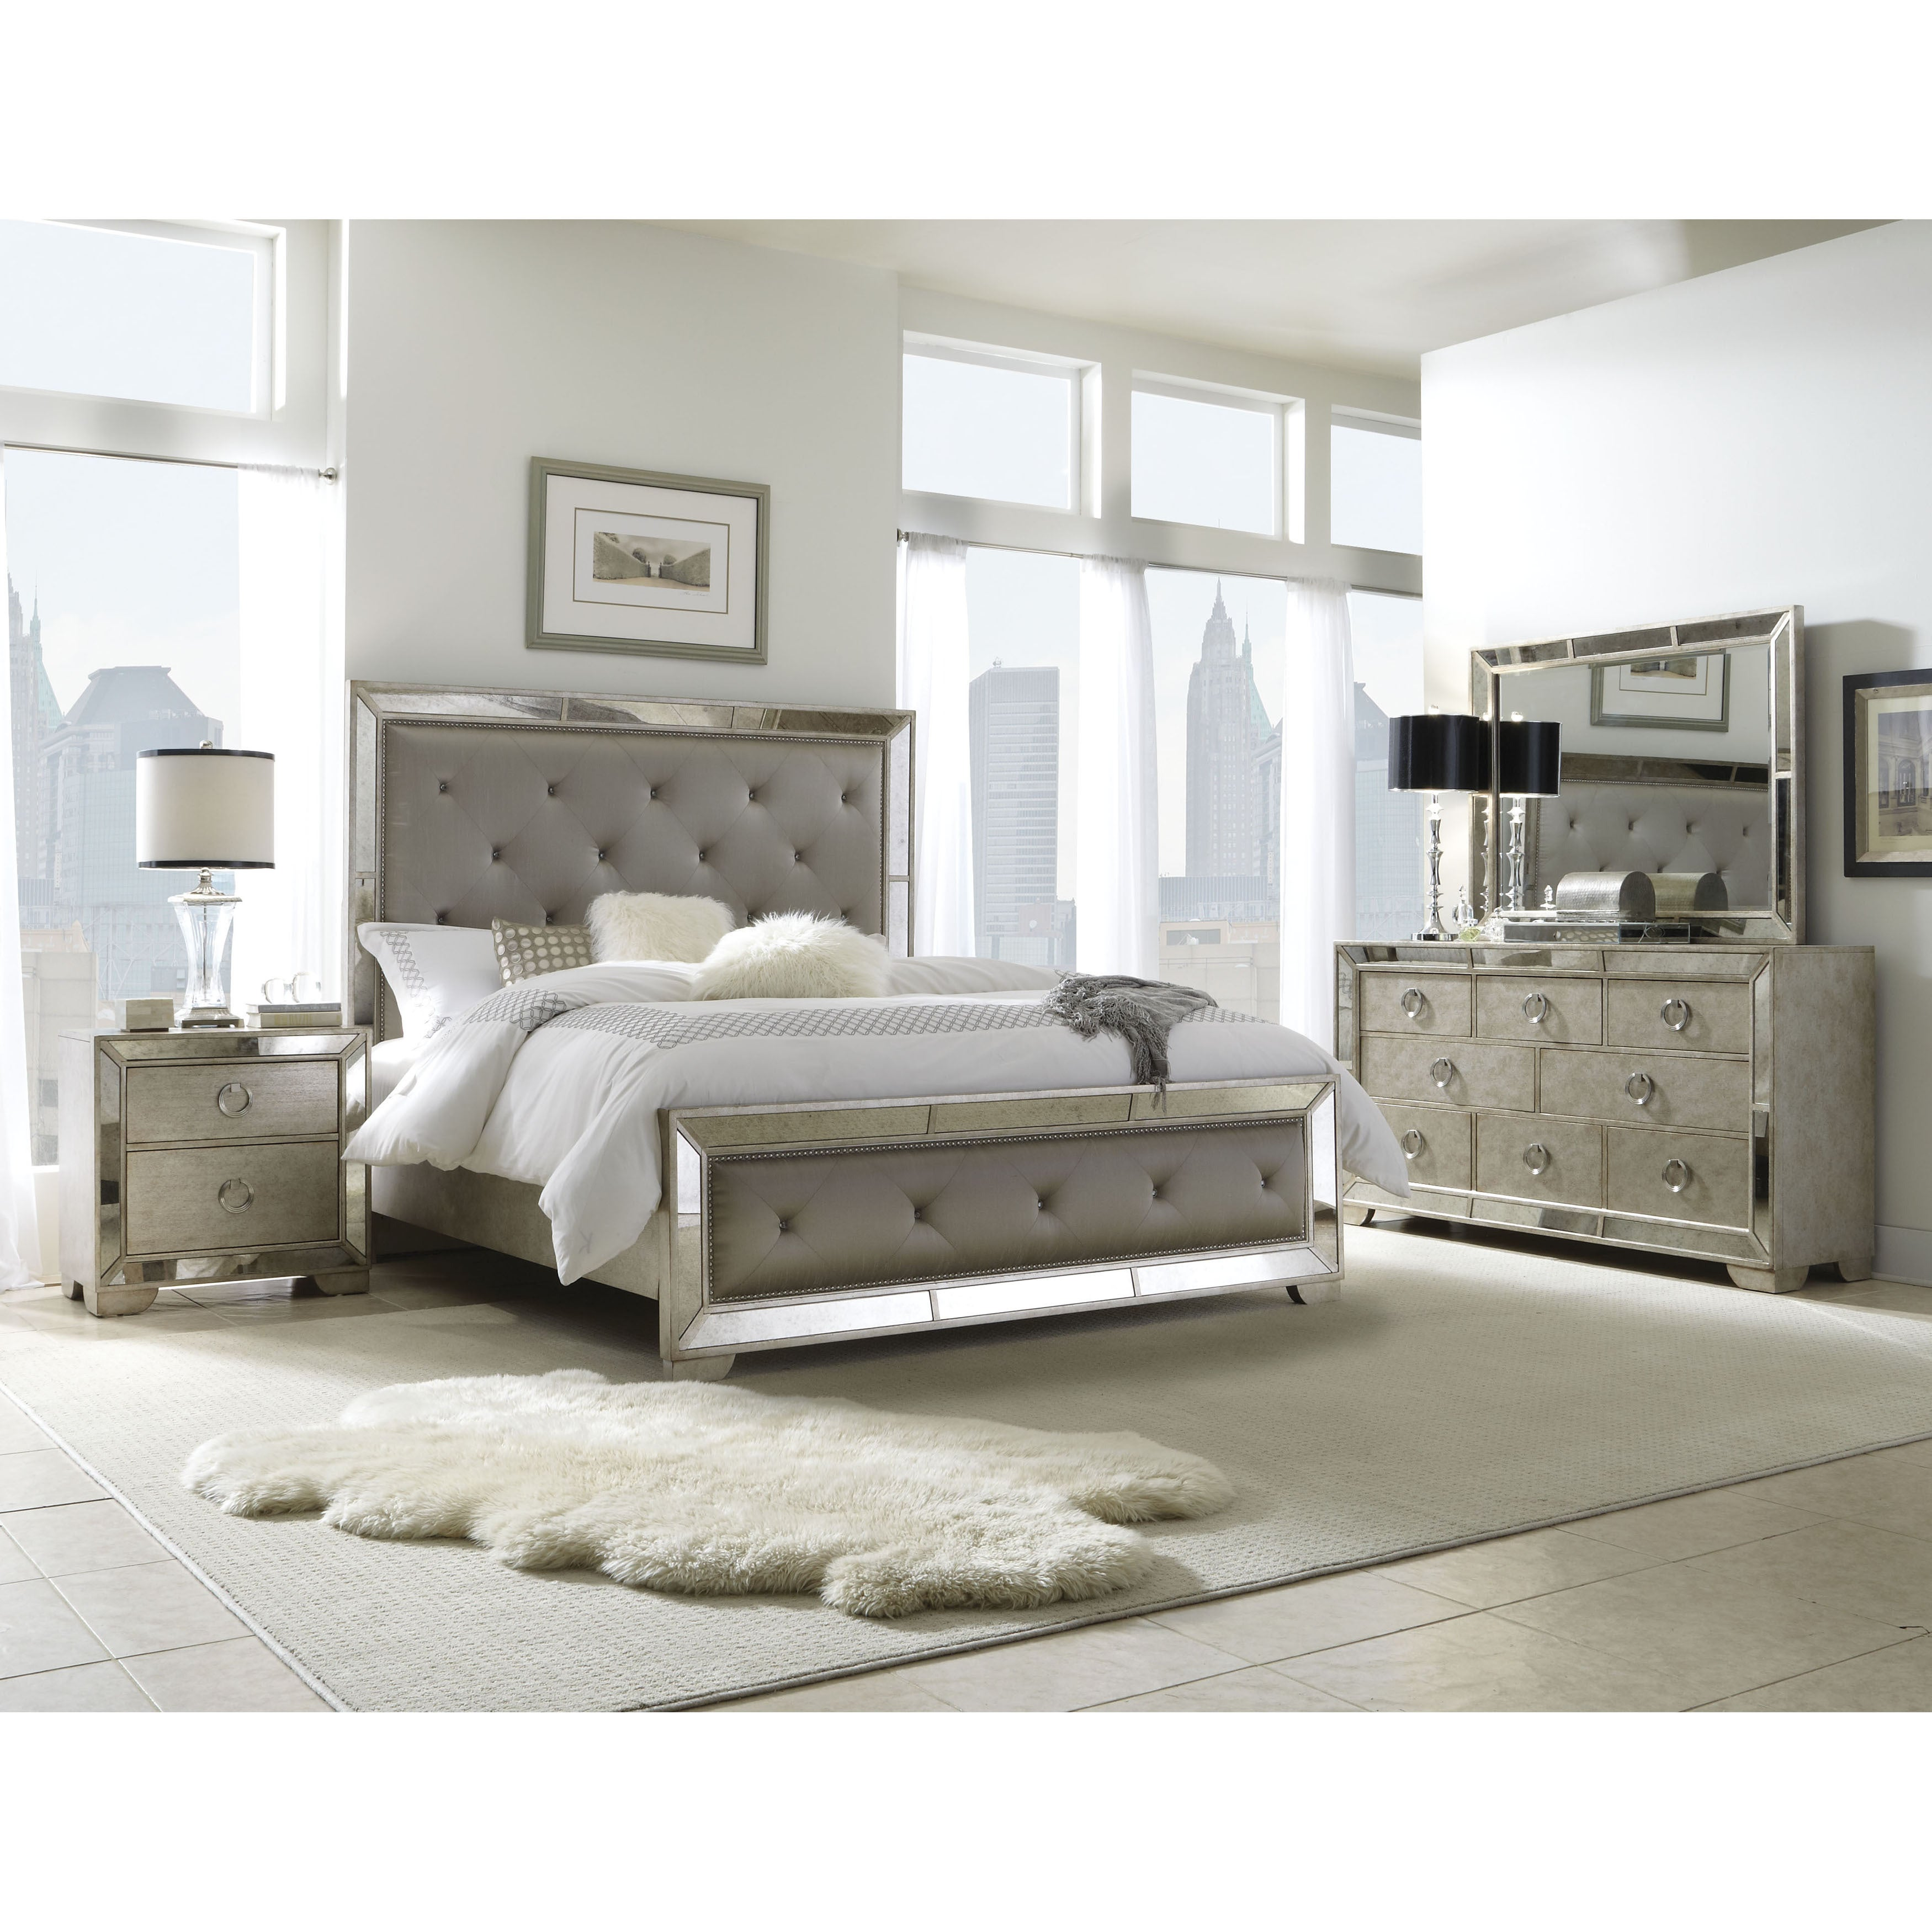 Celine 5 piece Mirrored and Upholstered Tufted Queen size Bedroom Set Overs